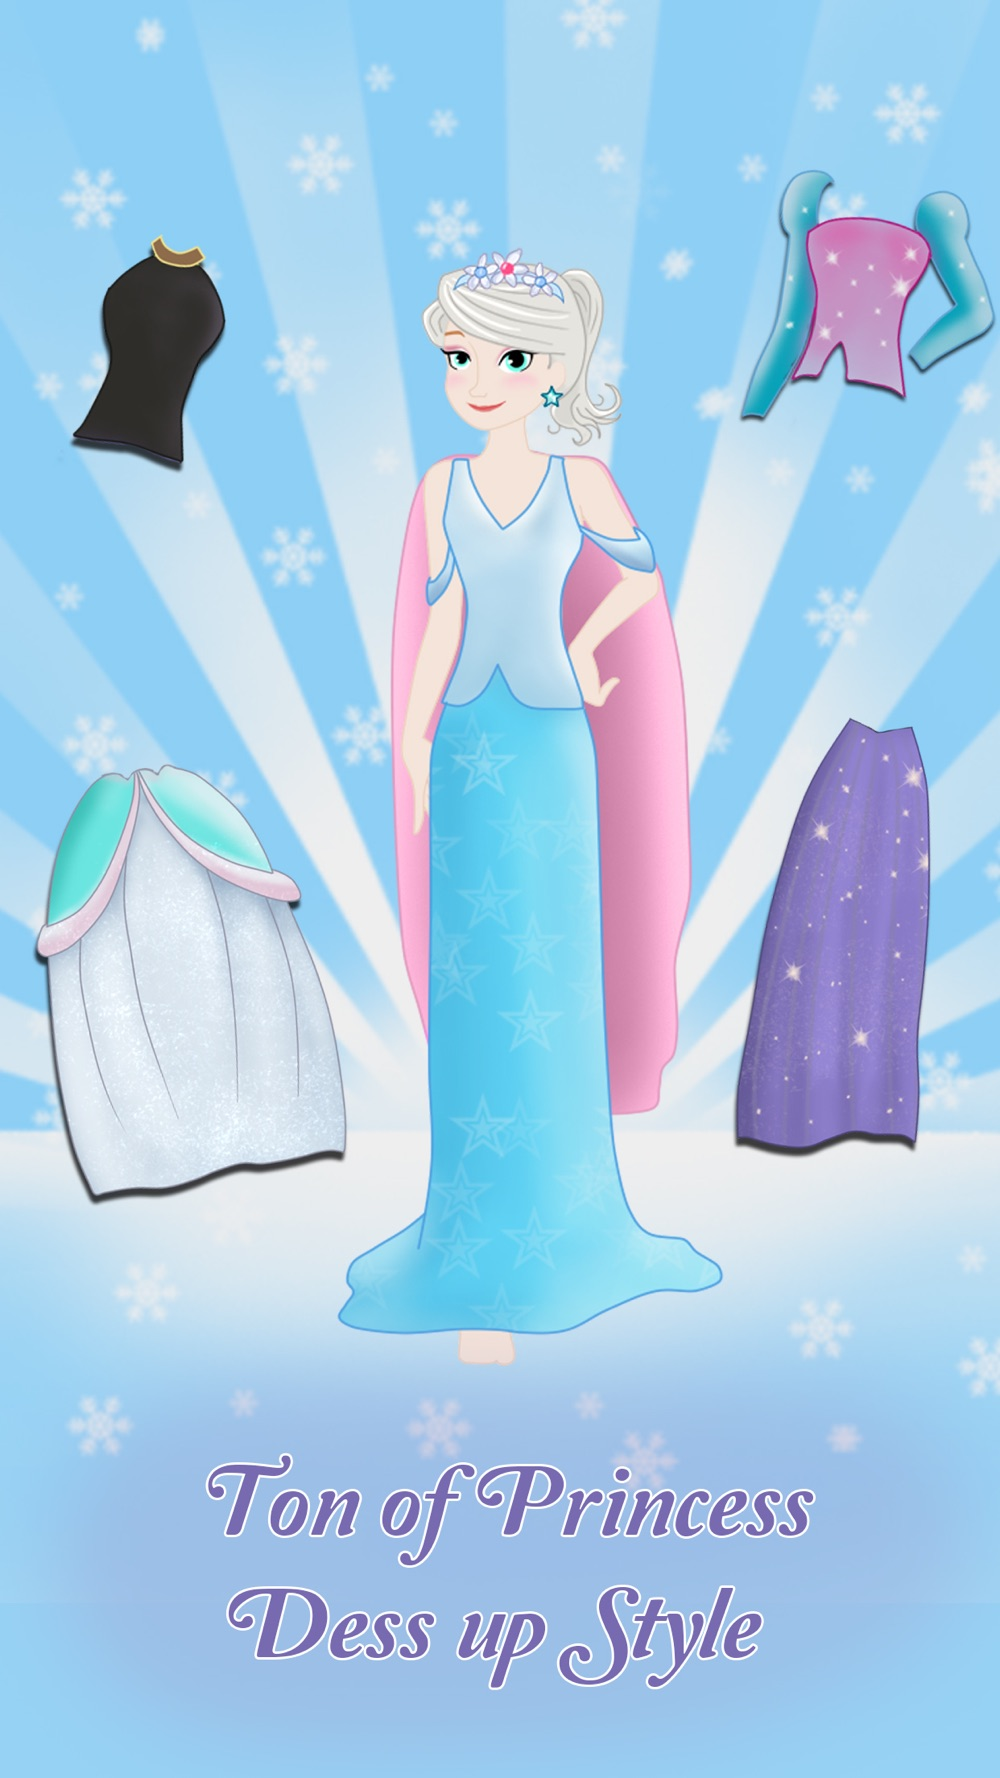 Princess Frozen Dress up and makeover beauty salon for girls hack tool